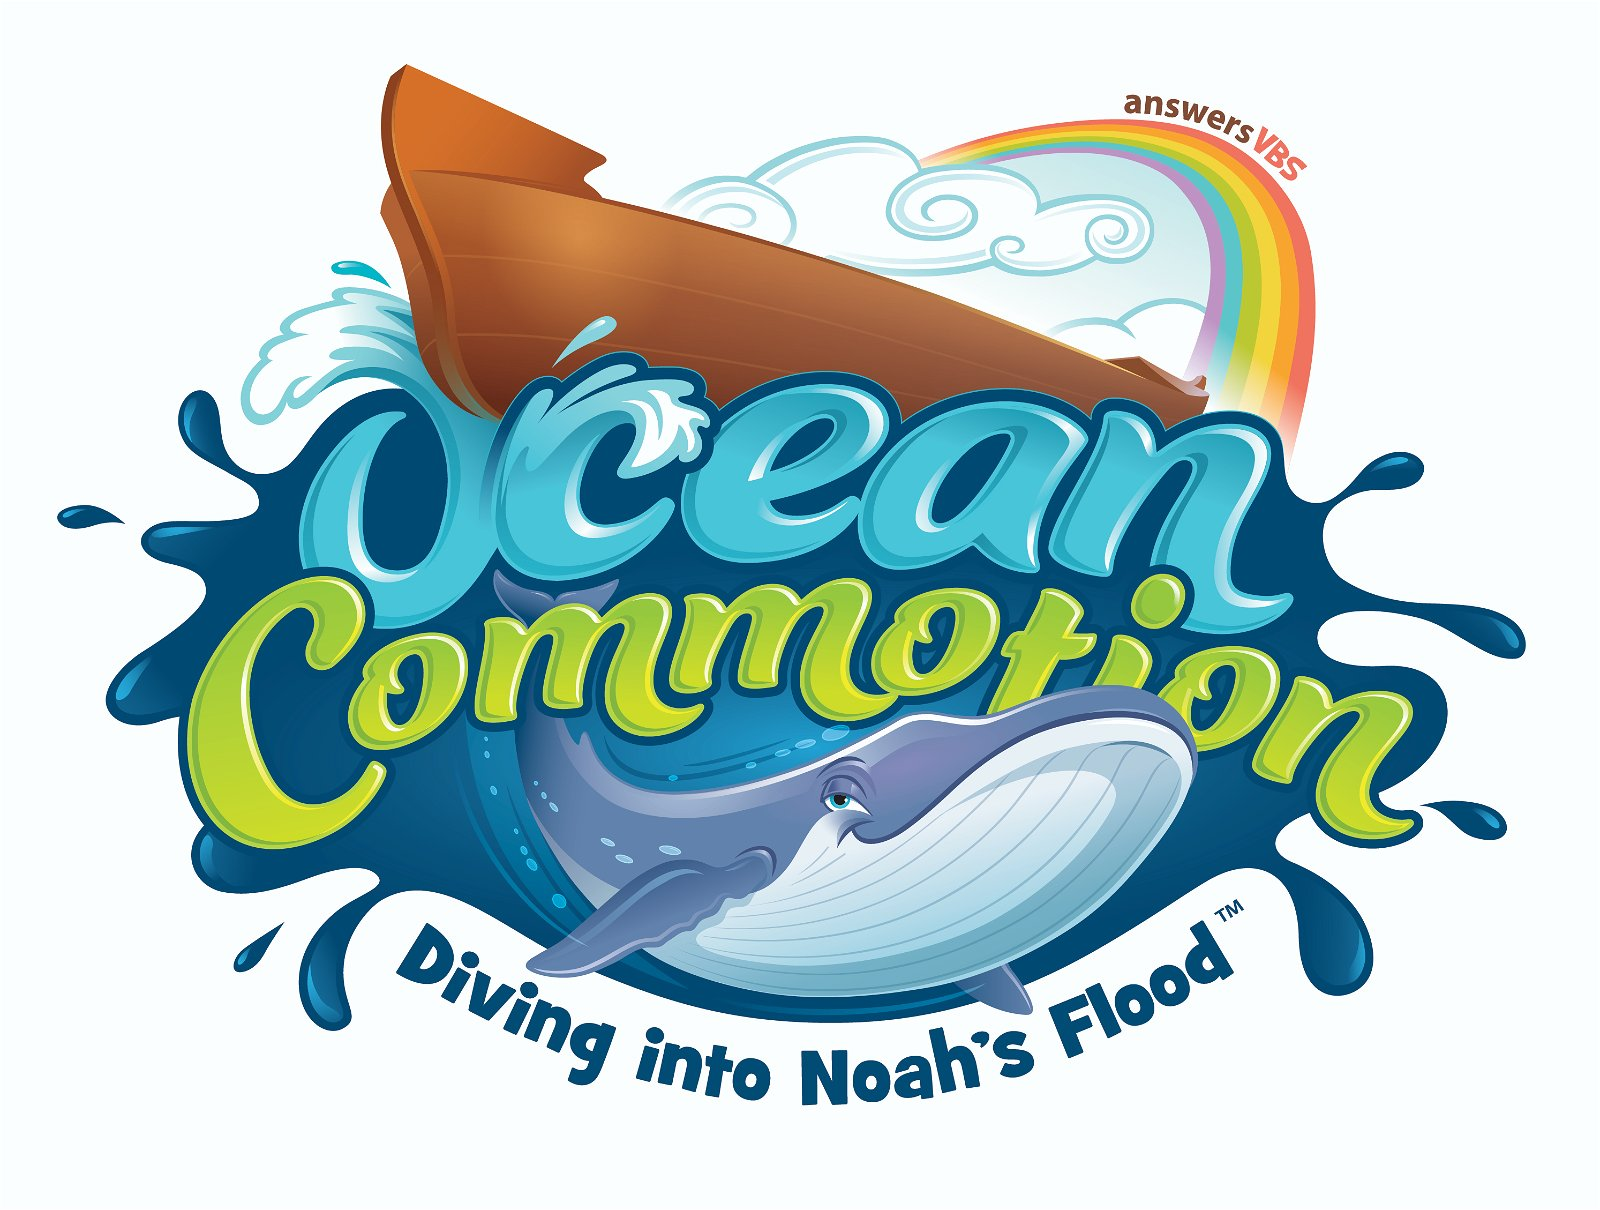 https://assets.answersingenesis.org/img/page/vbs/2016/resources/ocean-commotion-graphic-logo.jpg